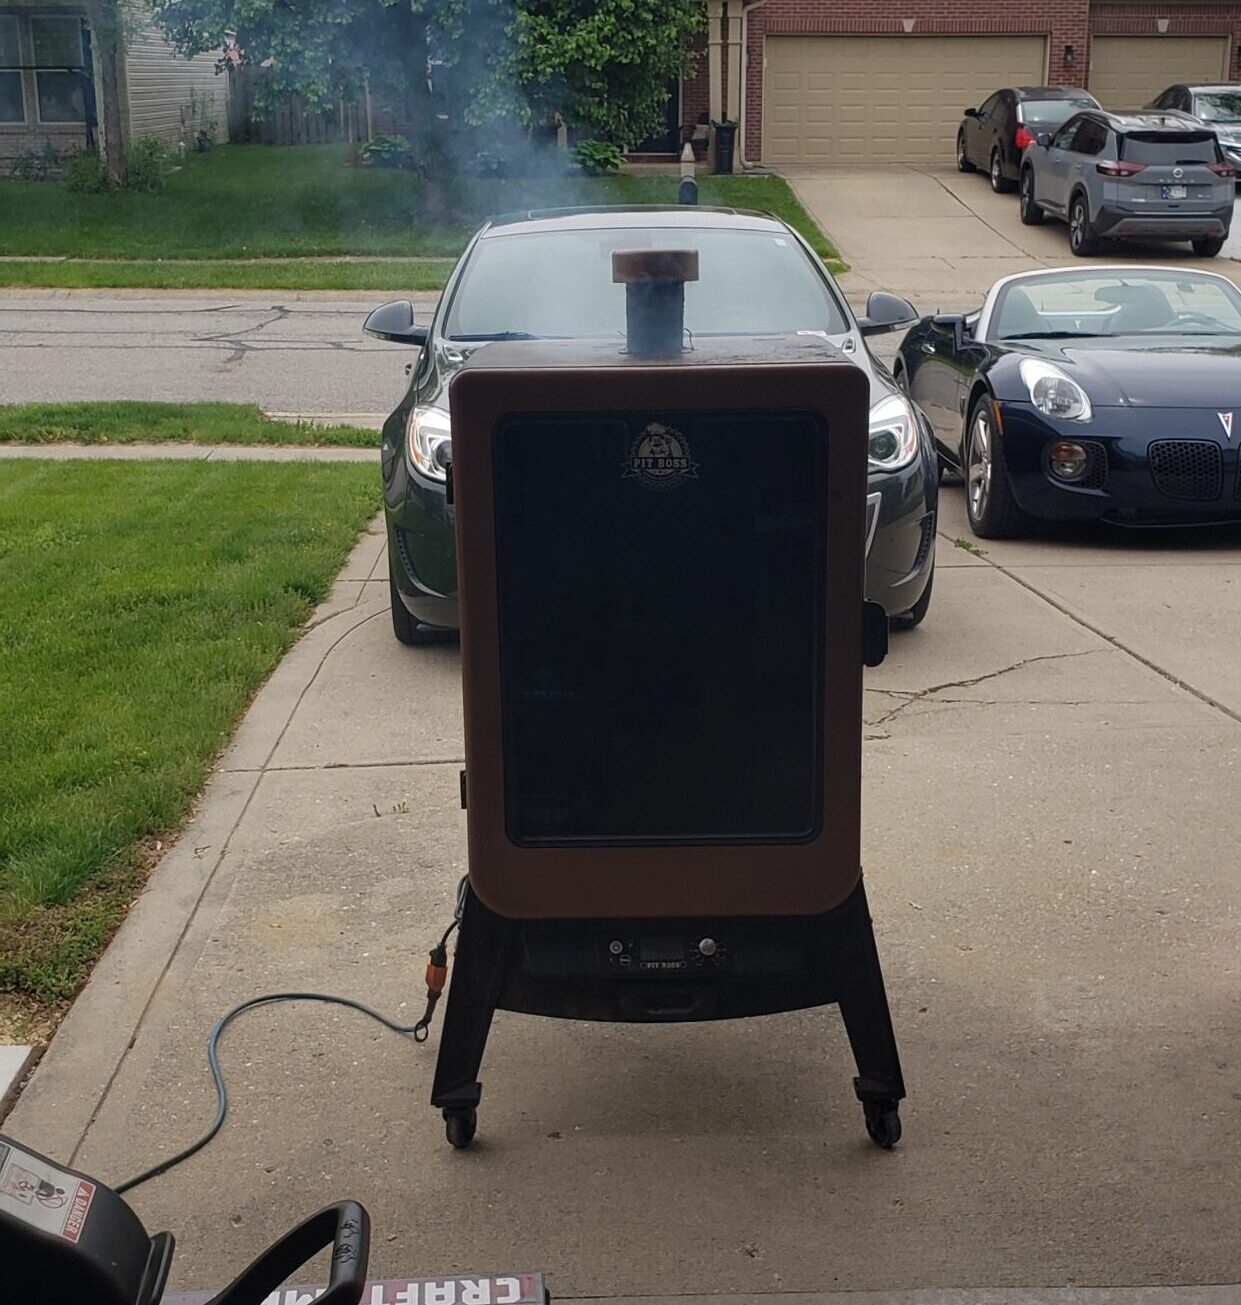 WHAT SMOKER DO WE USE?